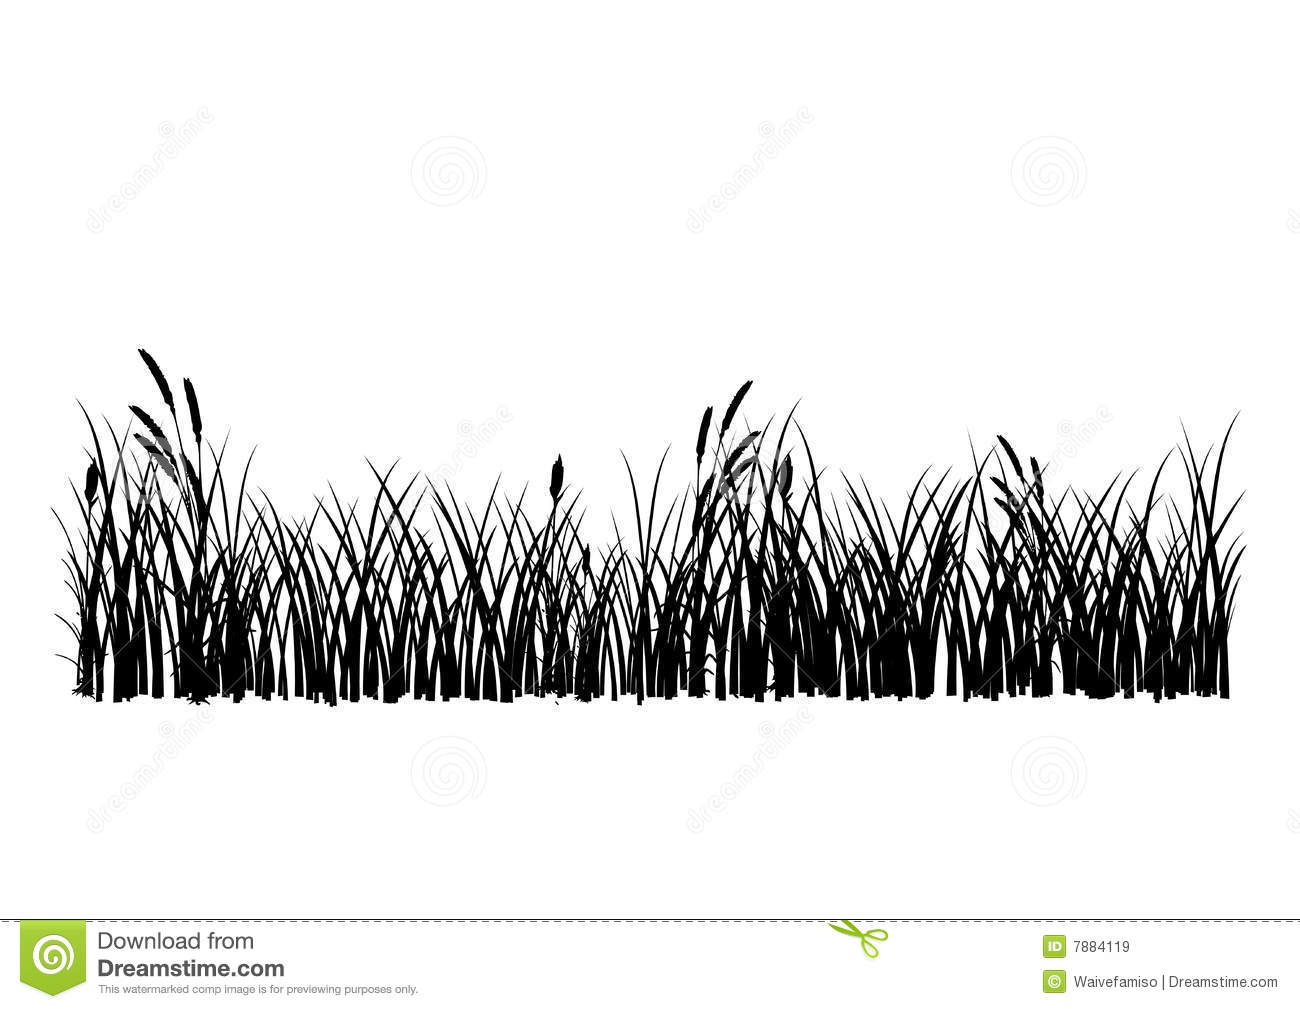 Easter Lily Silhouette furthermore Several Grass And Butterflies Silhouette Vector 26864 likewise Royalty Free Stock Photos Crown Collection Vector Silhouette File Eps Format Image36283188 together with Mail Icon Clip Art 9640 likewise Lineman. on silhouettes of people